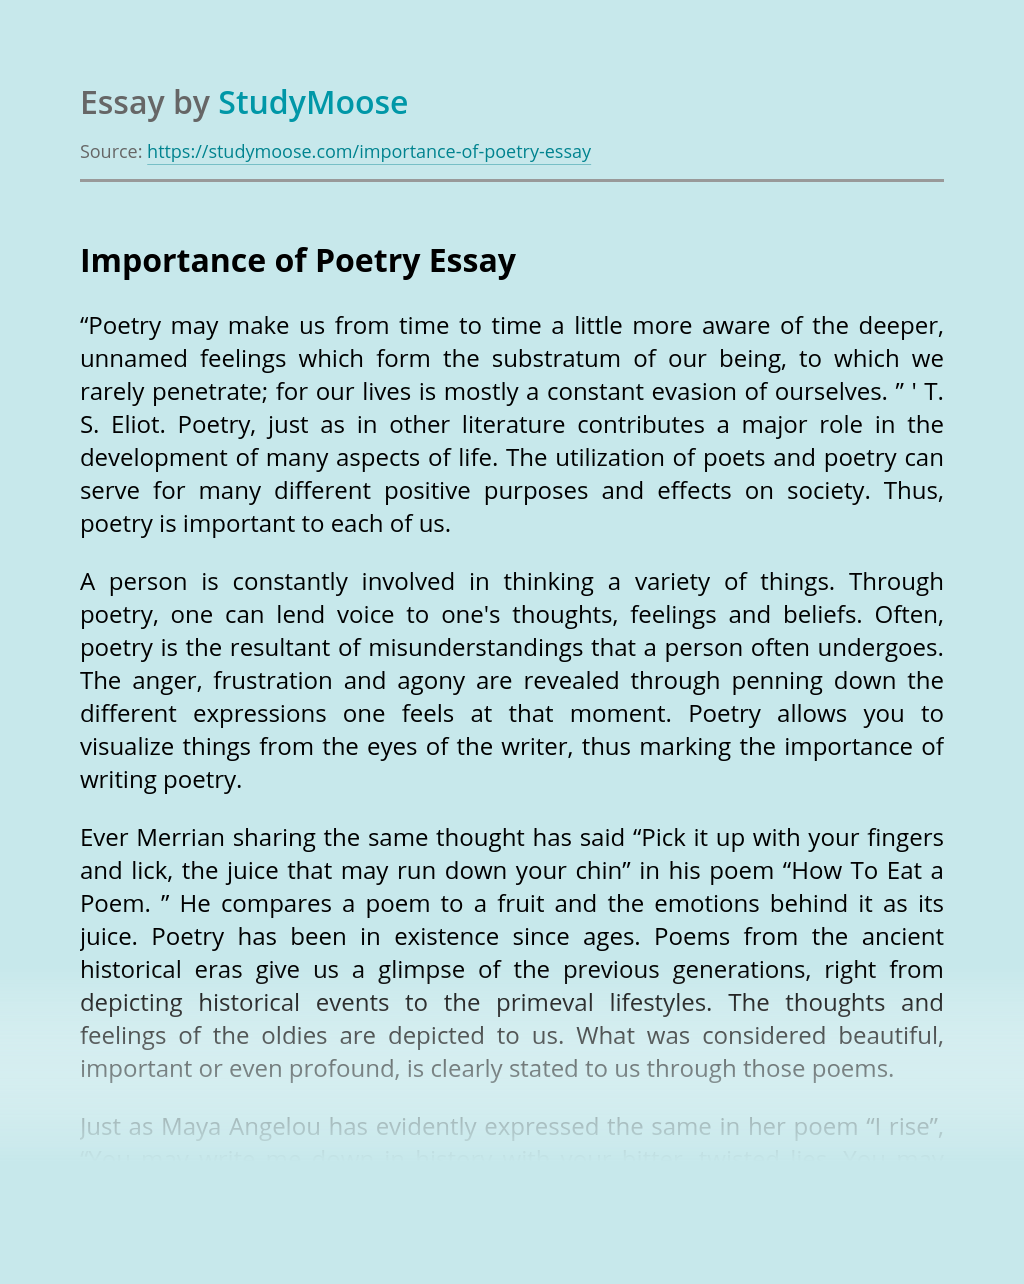 Importance of Poetry